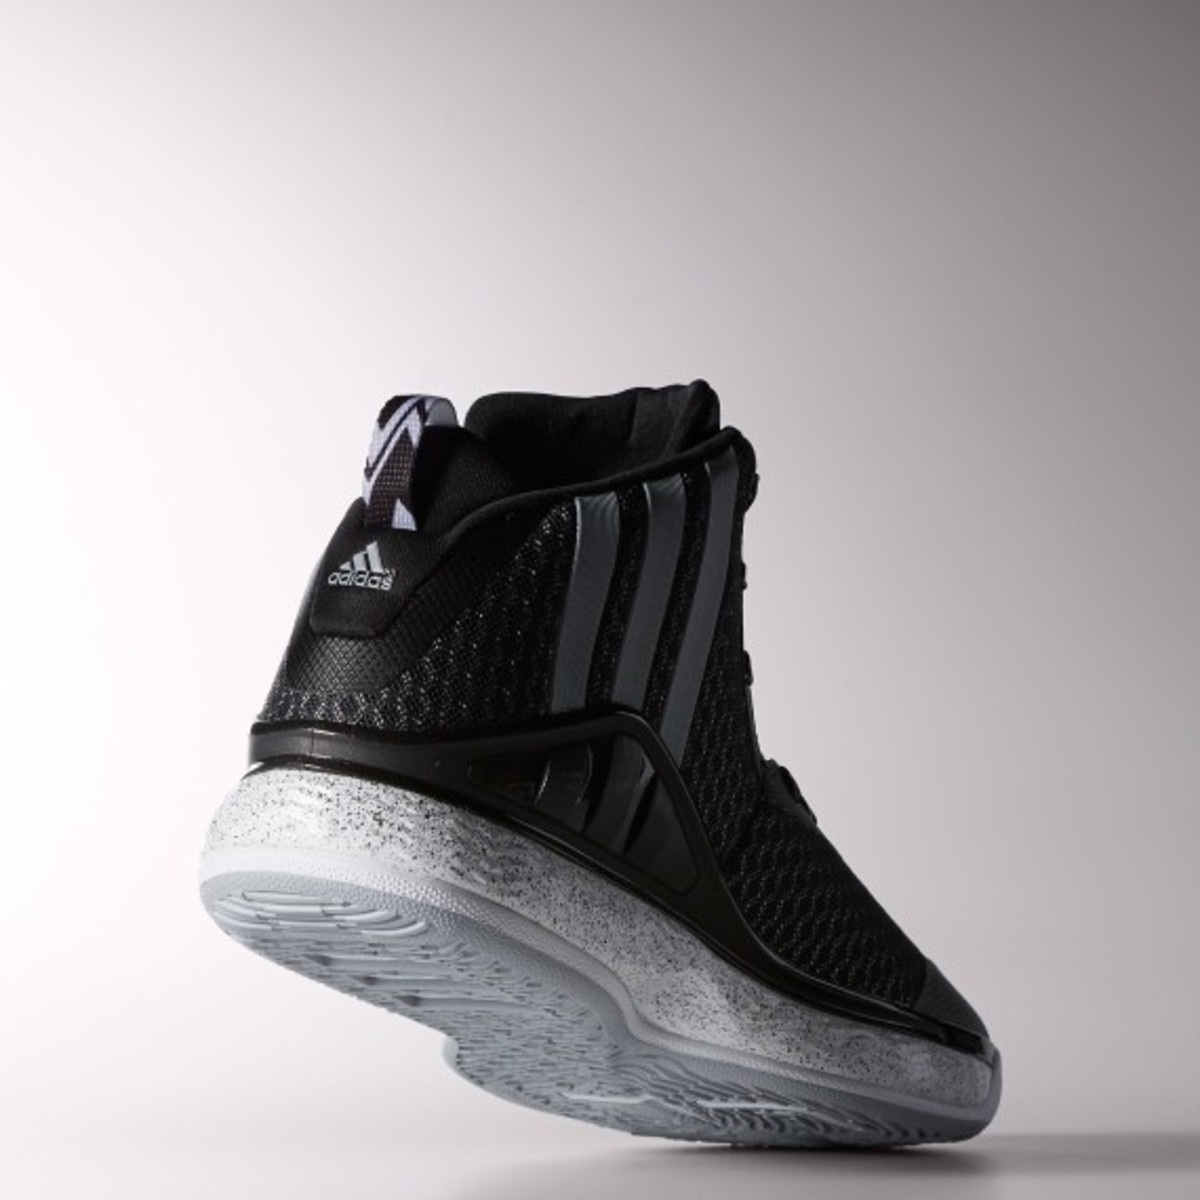 adidas-j-wall-1-signature-basketball-shoe-06